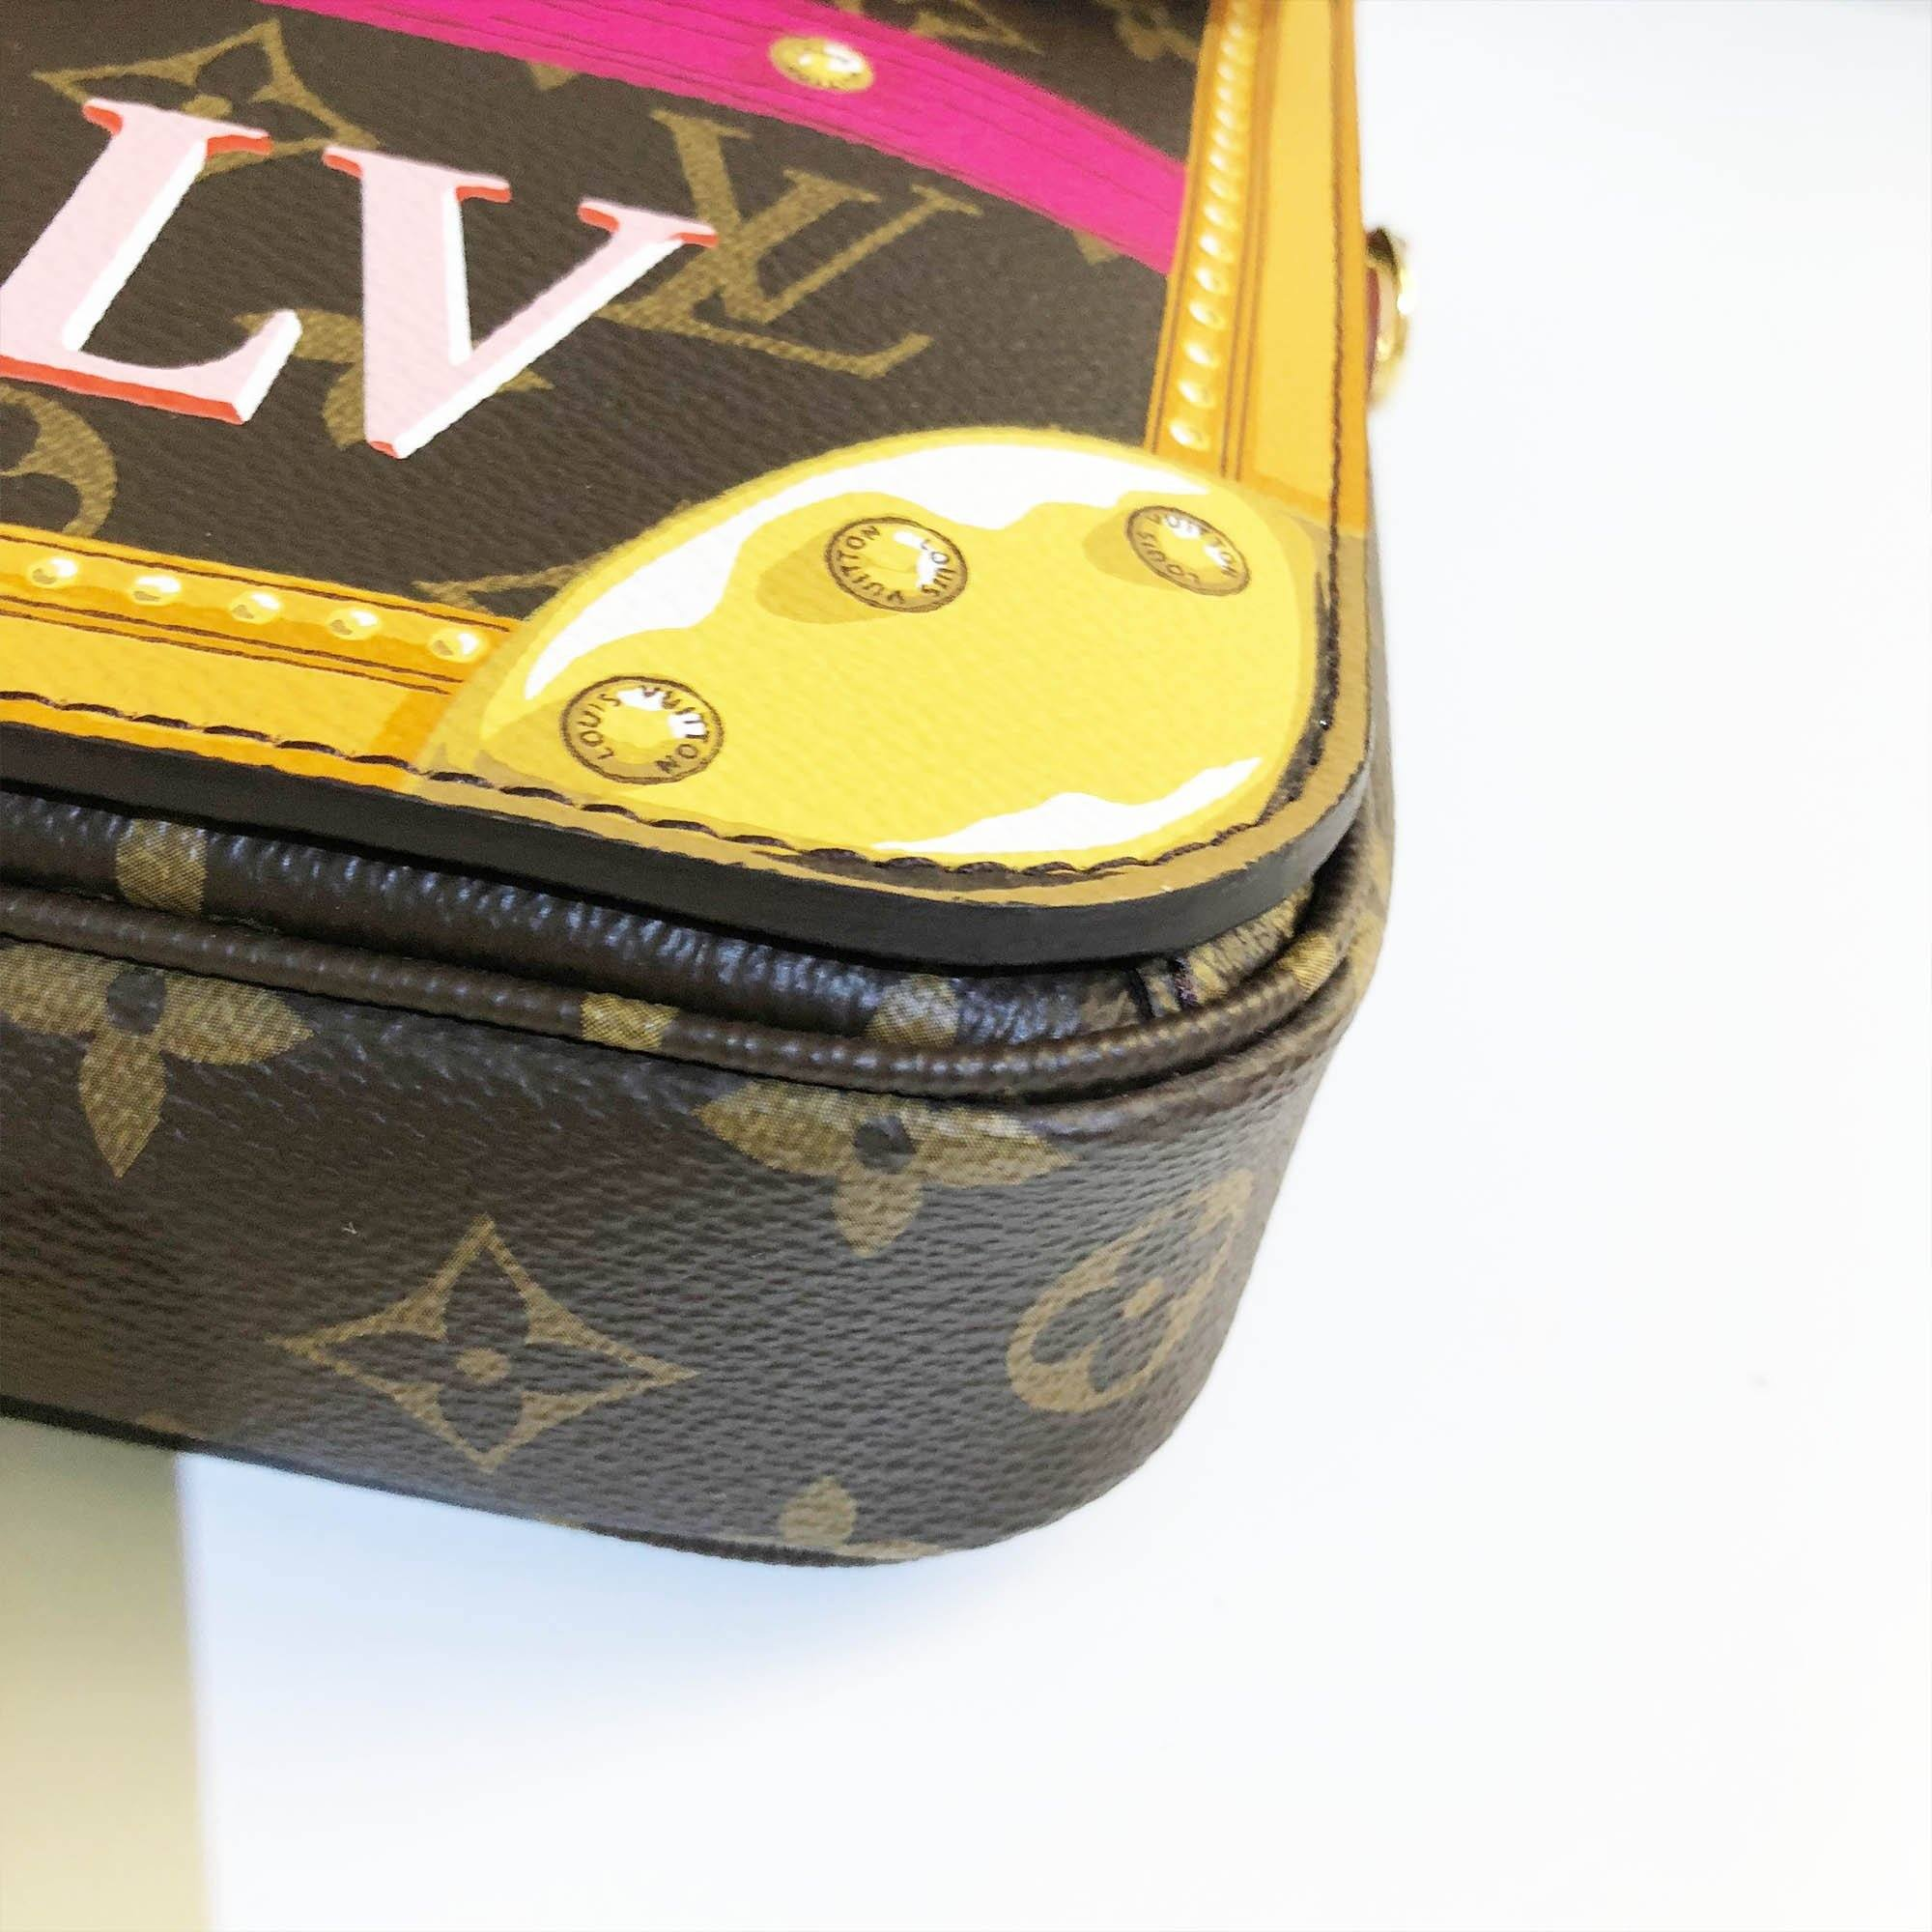 Louis Vuitton Pochette Metis Limited Edition Bag in Summer Trunk Collection